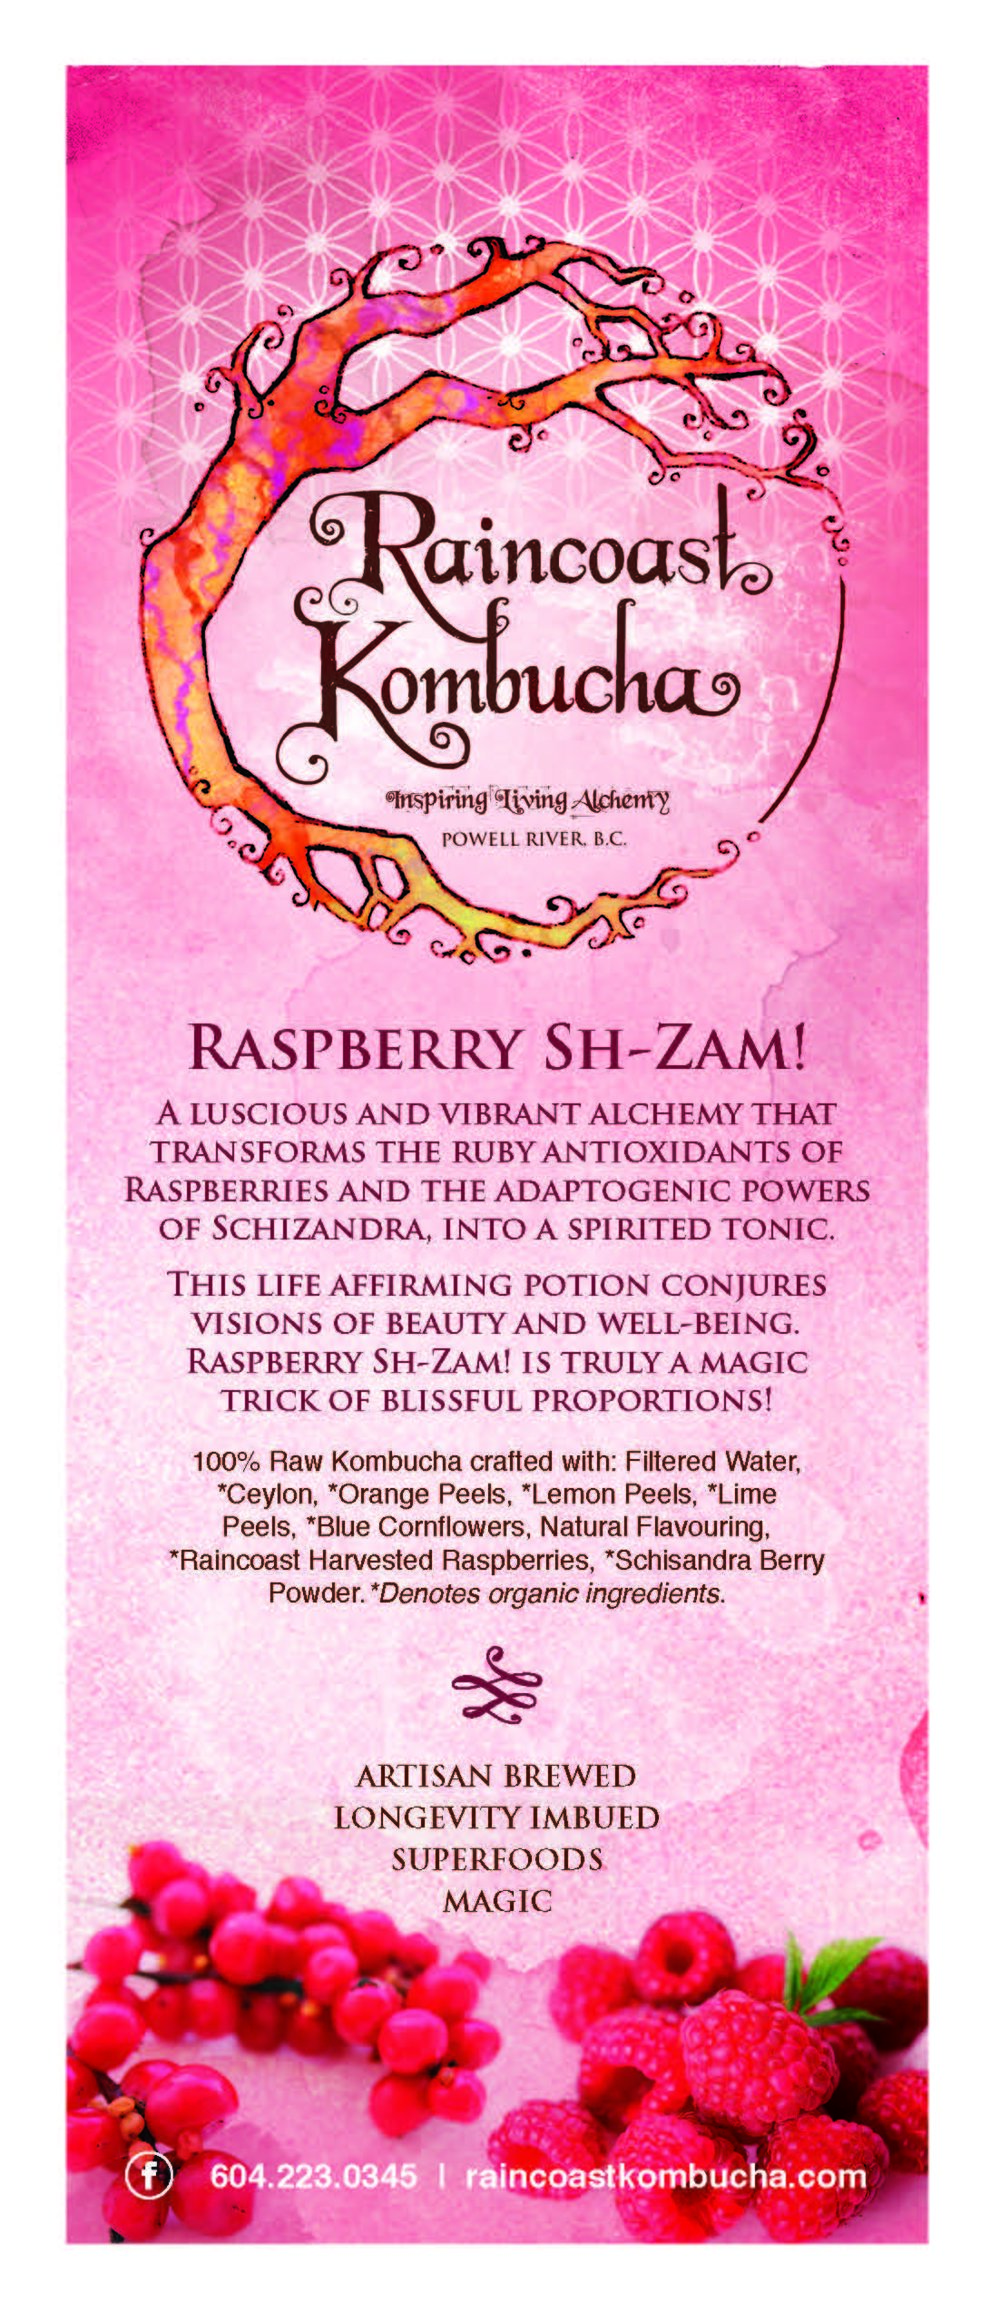 - RASPBERRY SH-ZAM! PLANT WISDOMRaspberriesThere is nothing like the rapturous aroma and tart-sweetness of a fresh raspberry! These ruby gems are potent nourishment. Their nutrition includes Vitamin C, Vitamin K, magnesium, folate, potassium and phosphorus, among others. These nutrients, along with the powerful antioxidants they contain, provide raspberries with the ability to improve heart health, manage diabetes, ease arthritis pain, fight premature aging, aid in weightloss and more. Schizandra BerrySchizandra or Schisandra is an adaptogenic fruit, long used in Traditional Chinese Medicine and for good reason! Schizandra extract and its berry help to prevent physical and chemical stress on the body, improve blood flow and circulation, protects the liver, beautifies the skin, promotes mental and cognitive health, treats asthma and boosts immunity. This potent fruit is known as the Five Flavour Berry, due to the fact that it possesses the five major flavour types: sour, sweet, salty, bitter, and spicy.